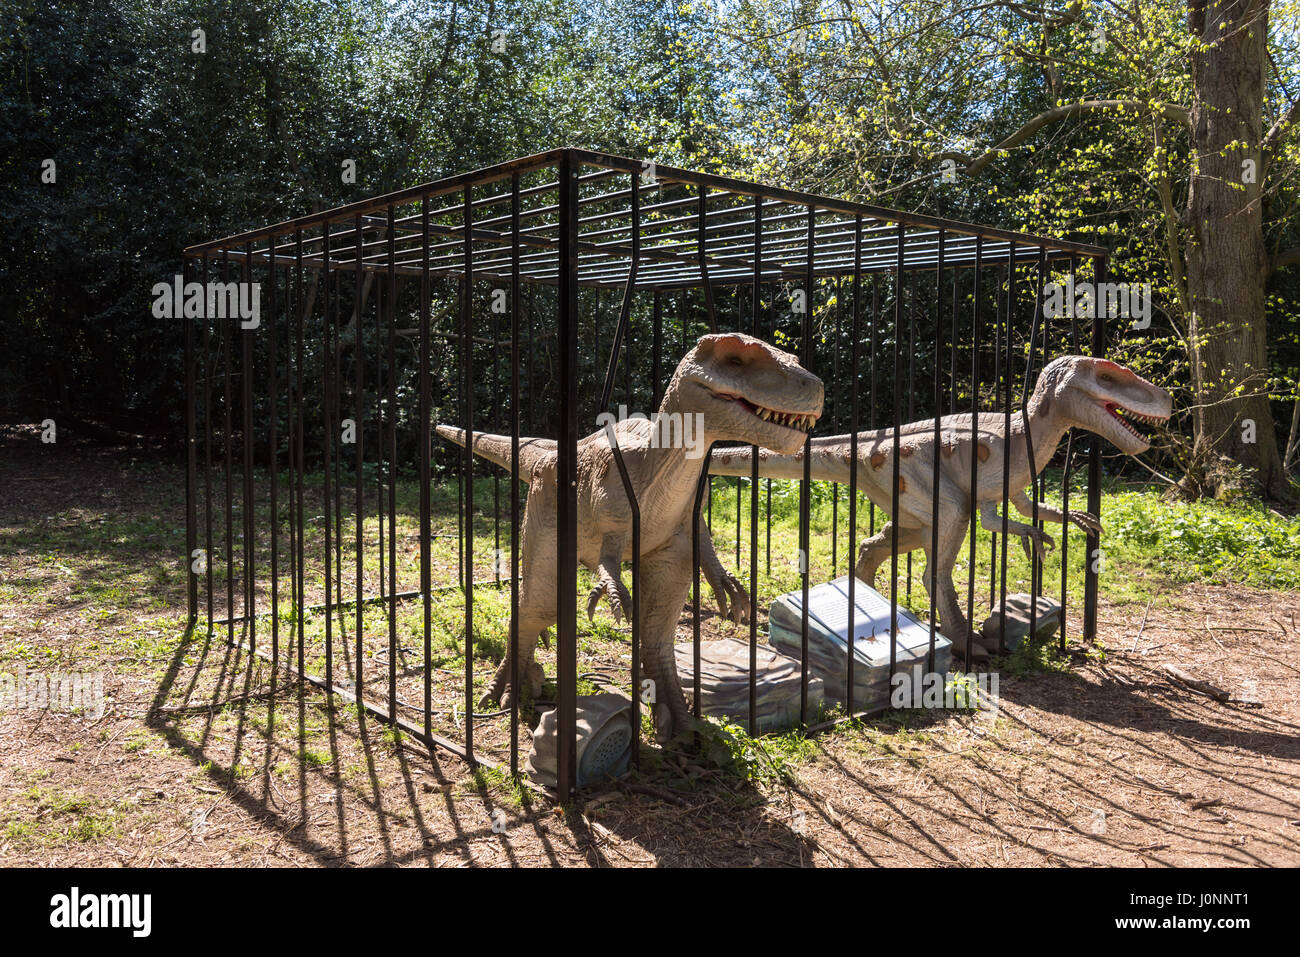 Deinonychus Raptors, Jurassic Kingdom, Osterley Park, London - Stock Image